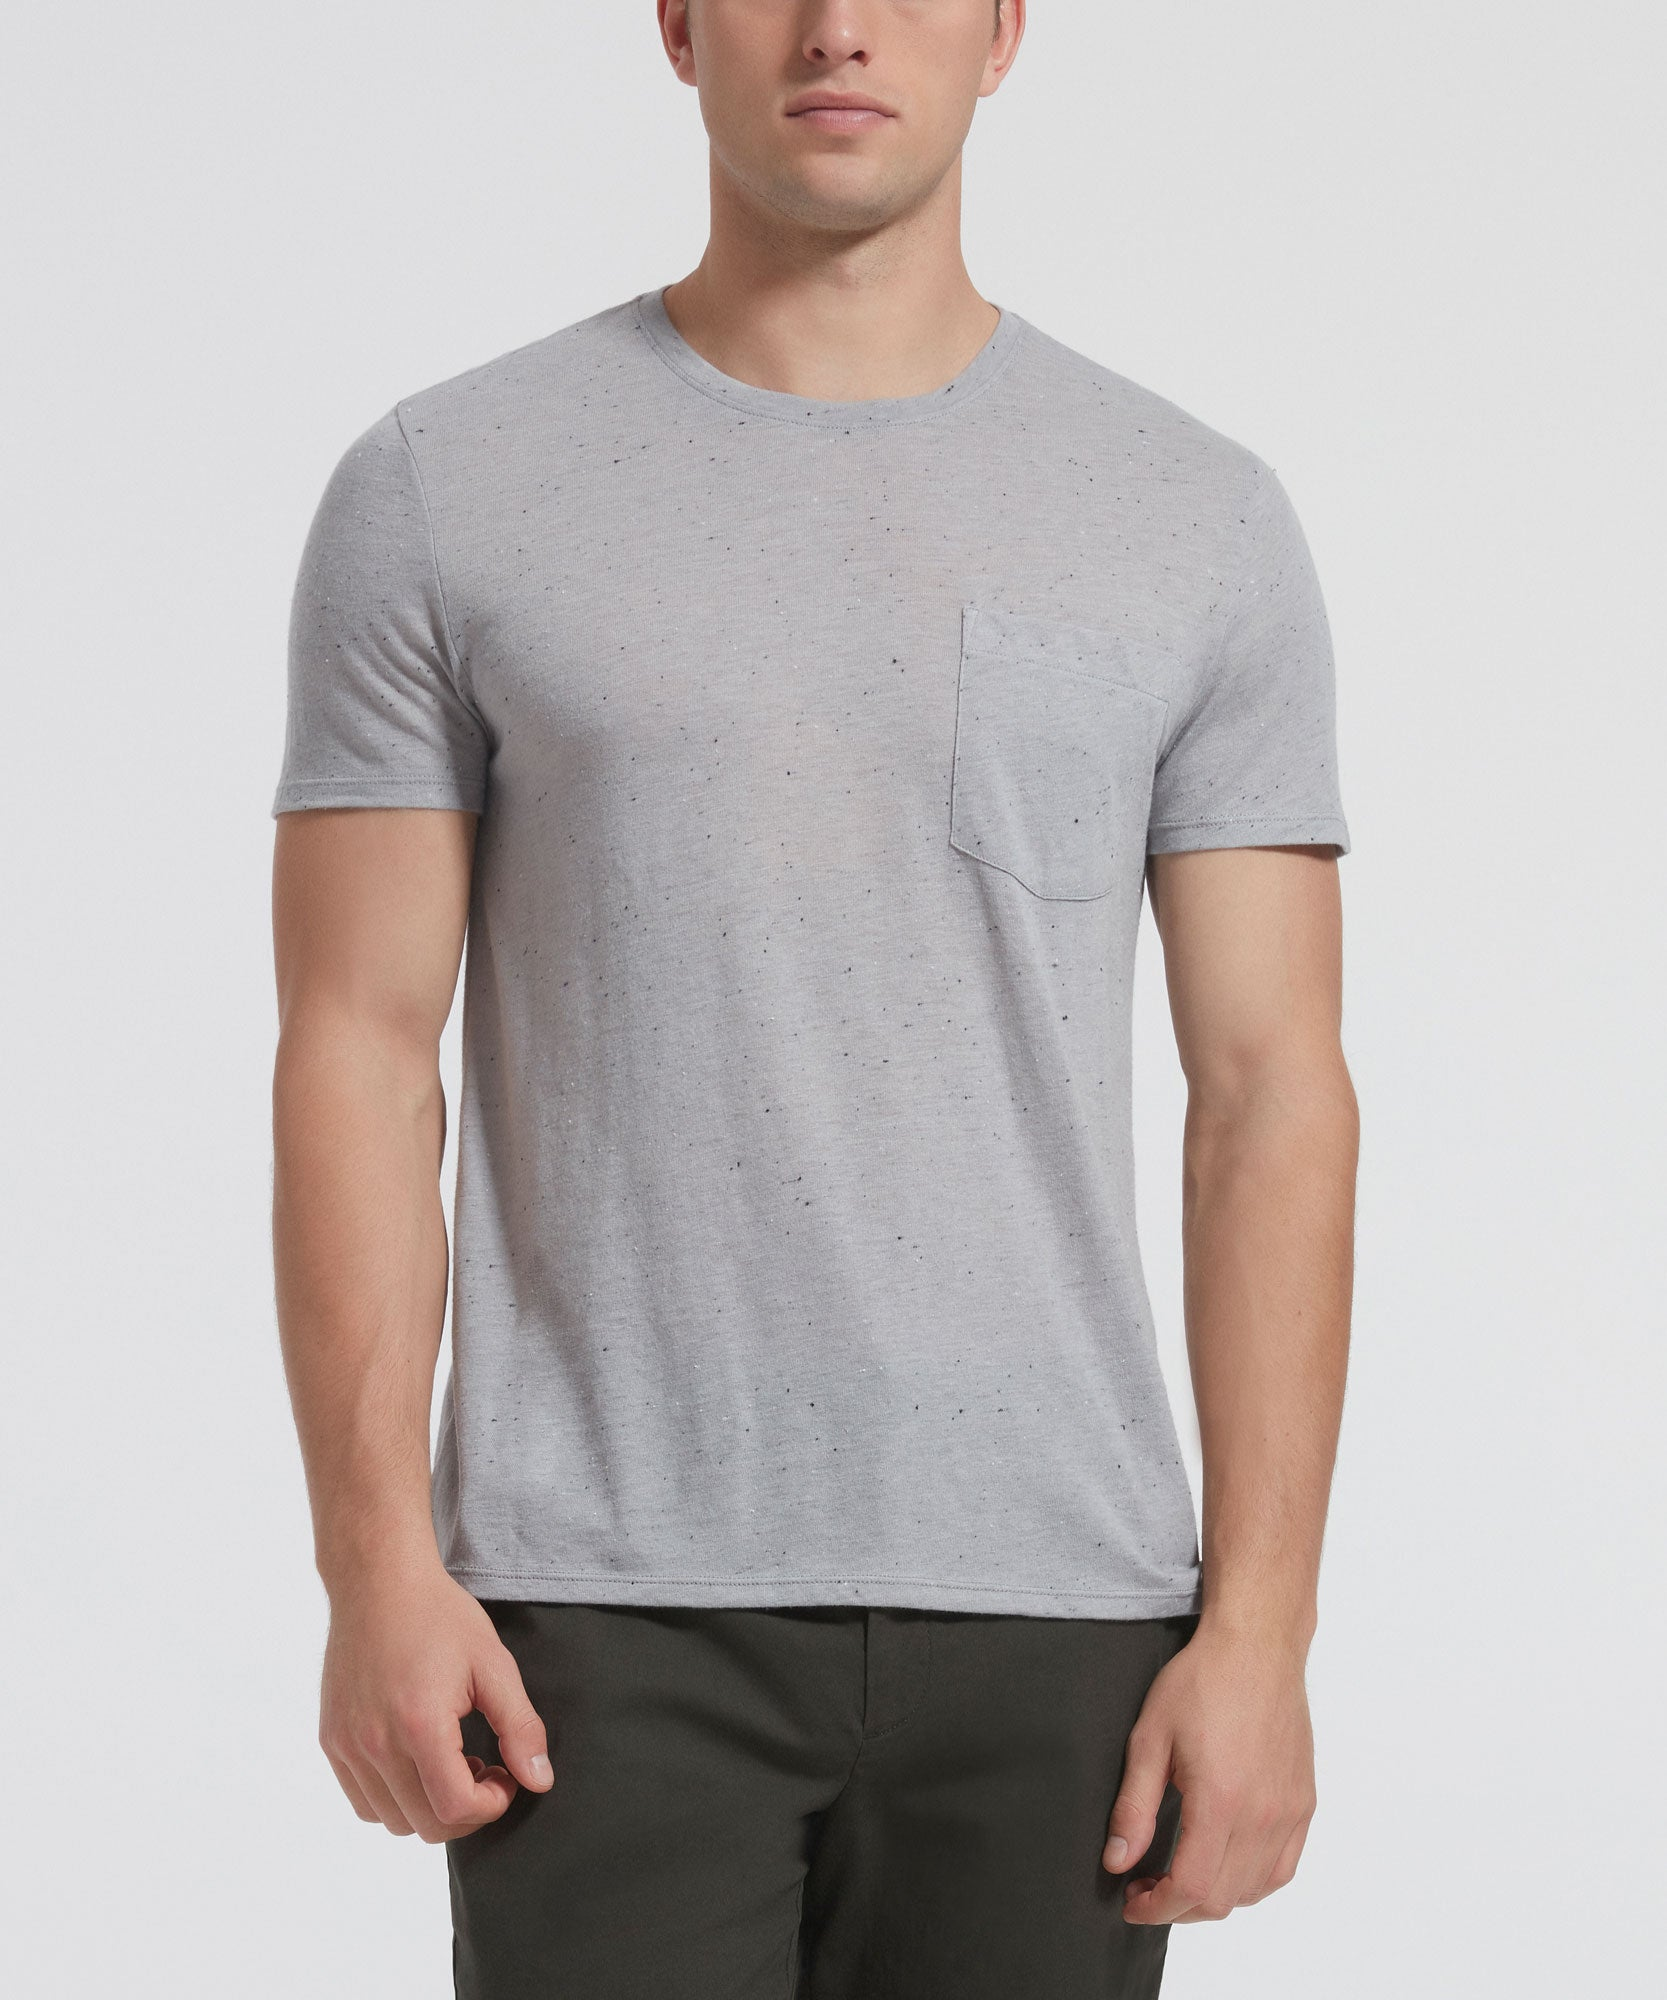 Grey Donegal Short Sleeve Crew Neck Pocket Tee - Men's Luxe Tee by ATM Anthony Thomas Melillo